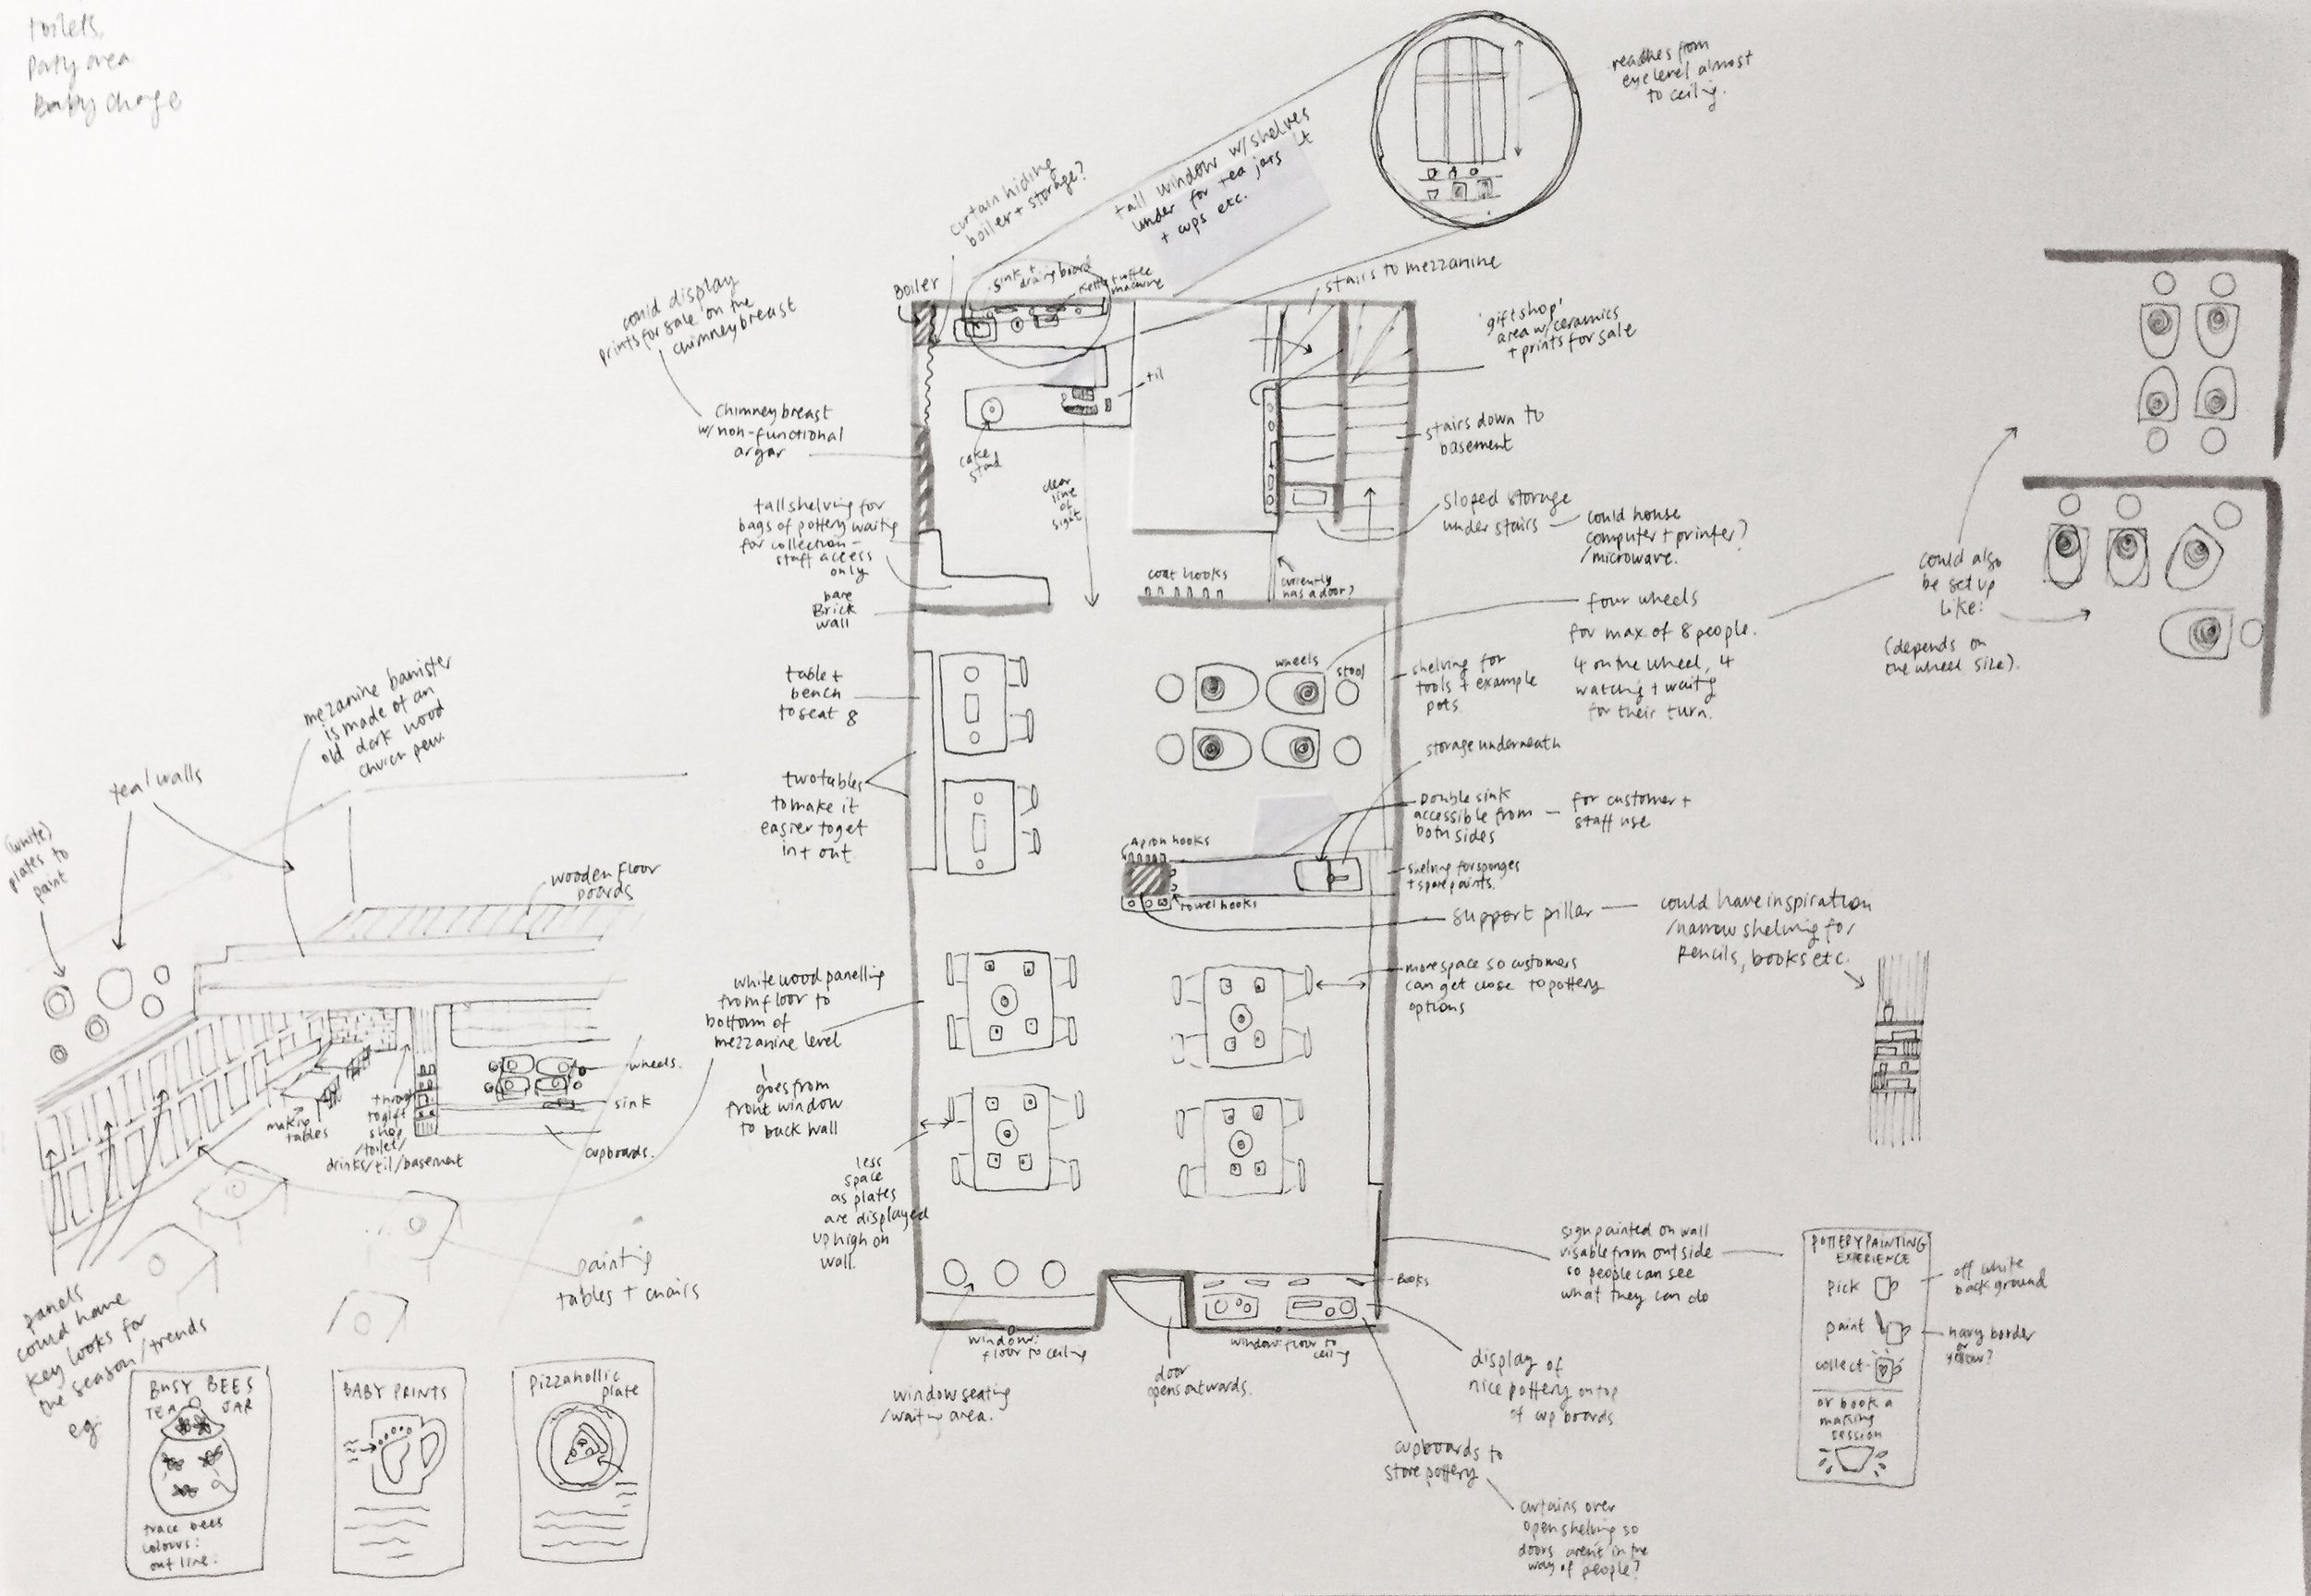 The pottery experience floor plan